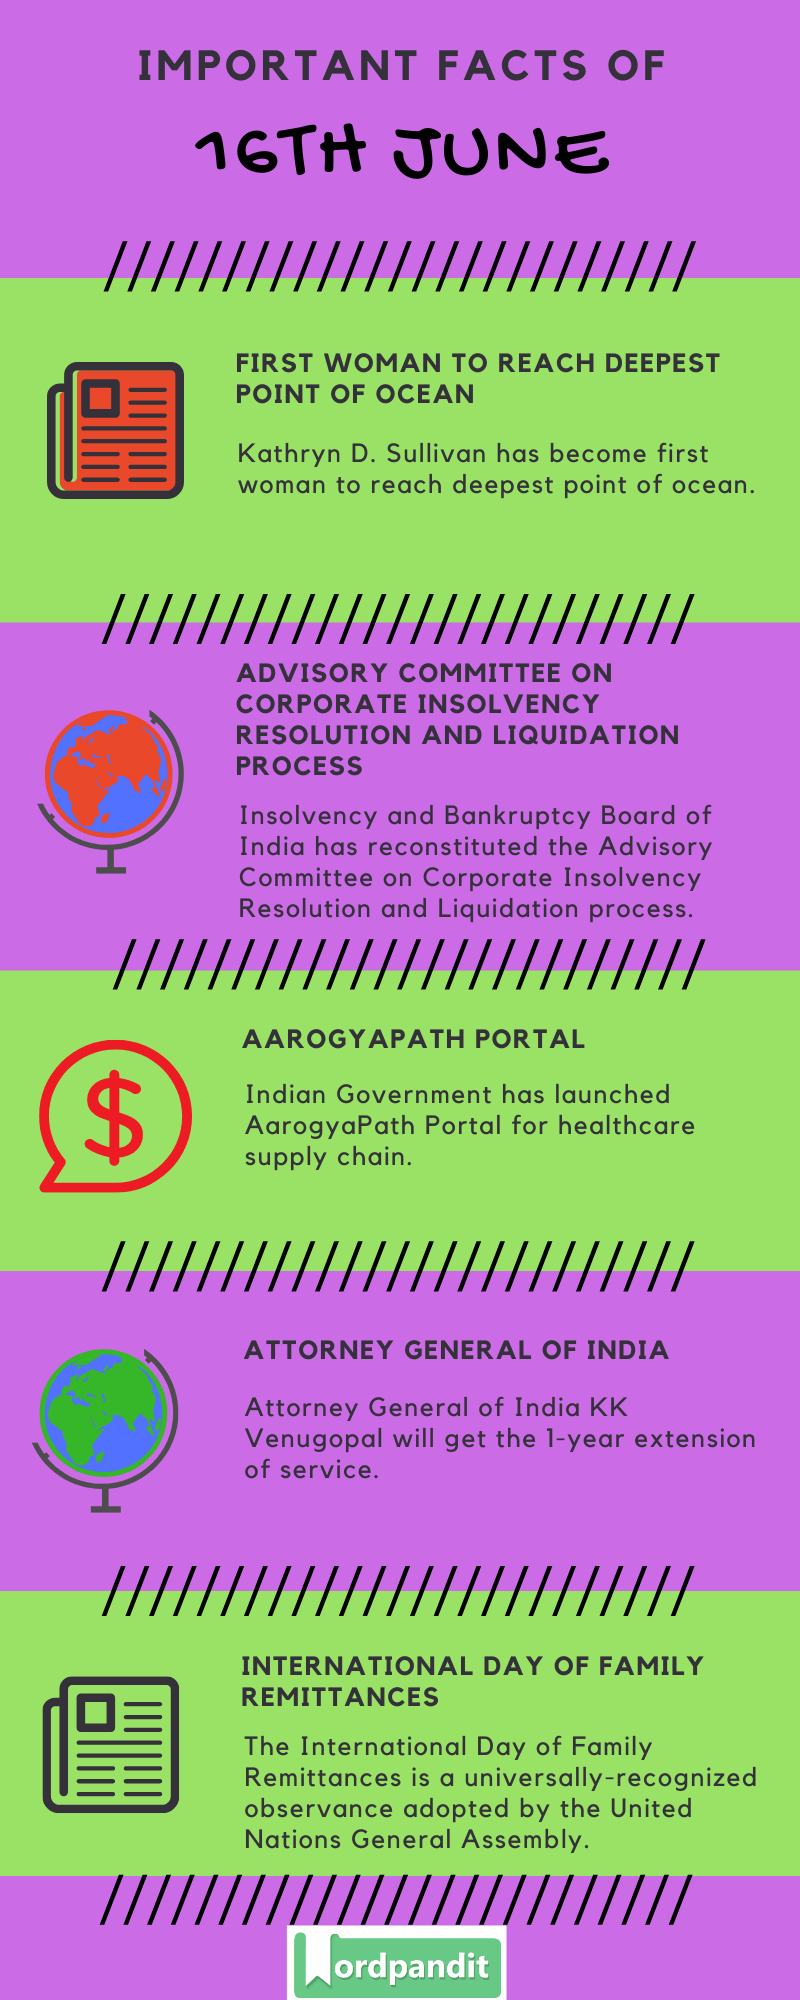 Daily Current Affairs 16th June 2020 Current Affairs Quiz 16th June 2020 Current Affairs Infographic